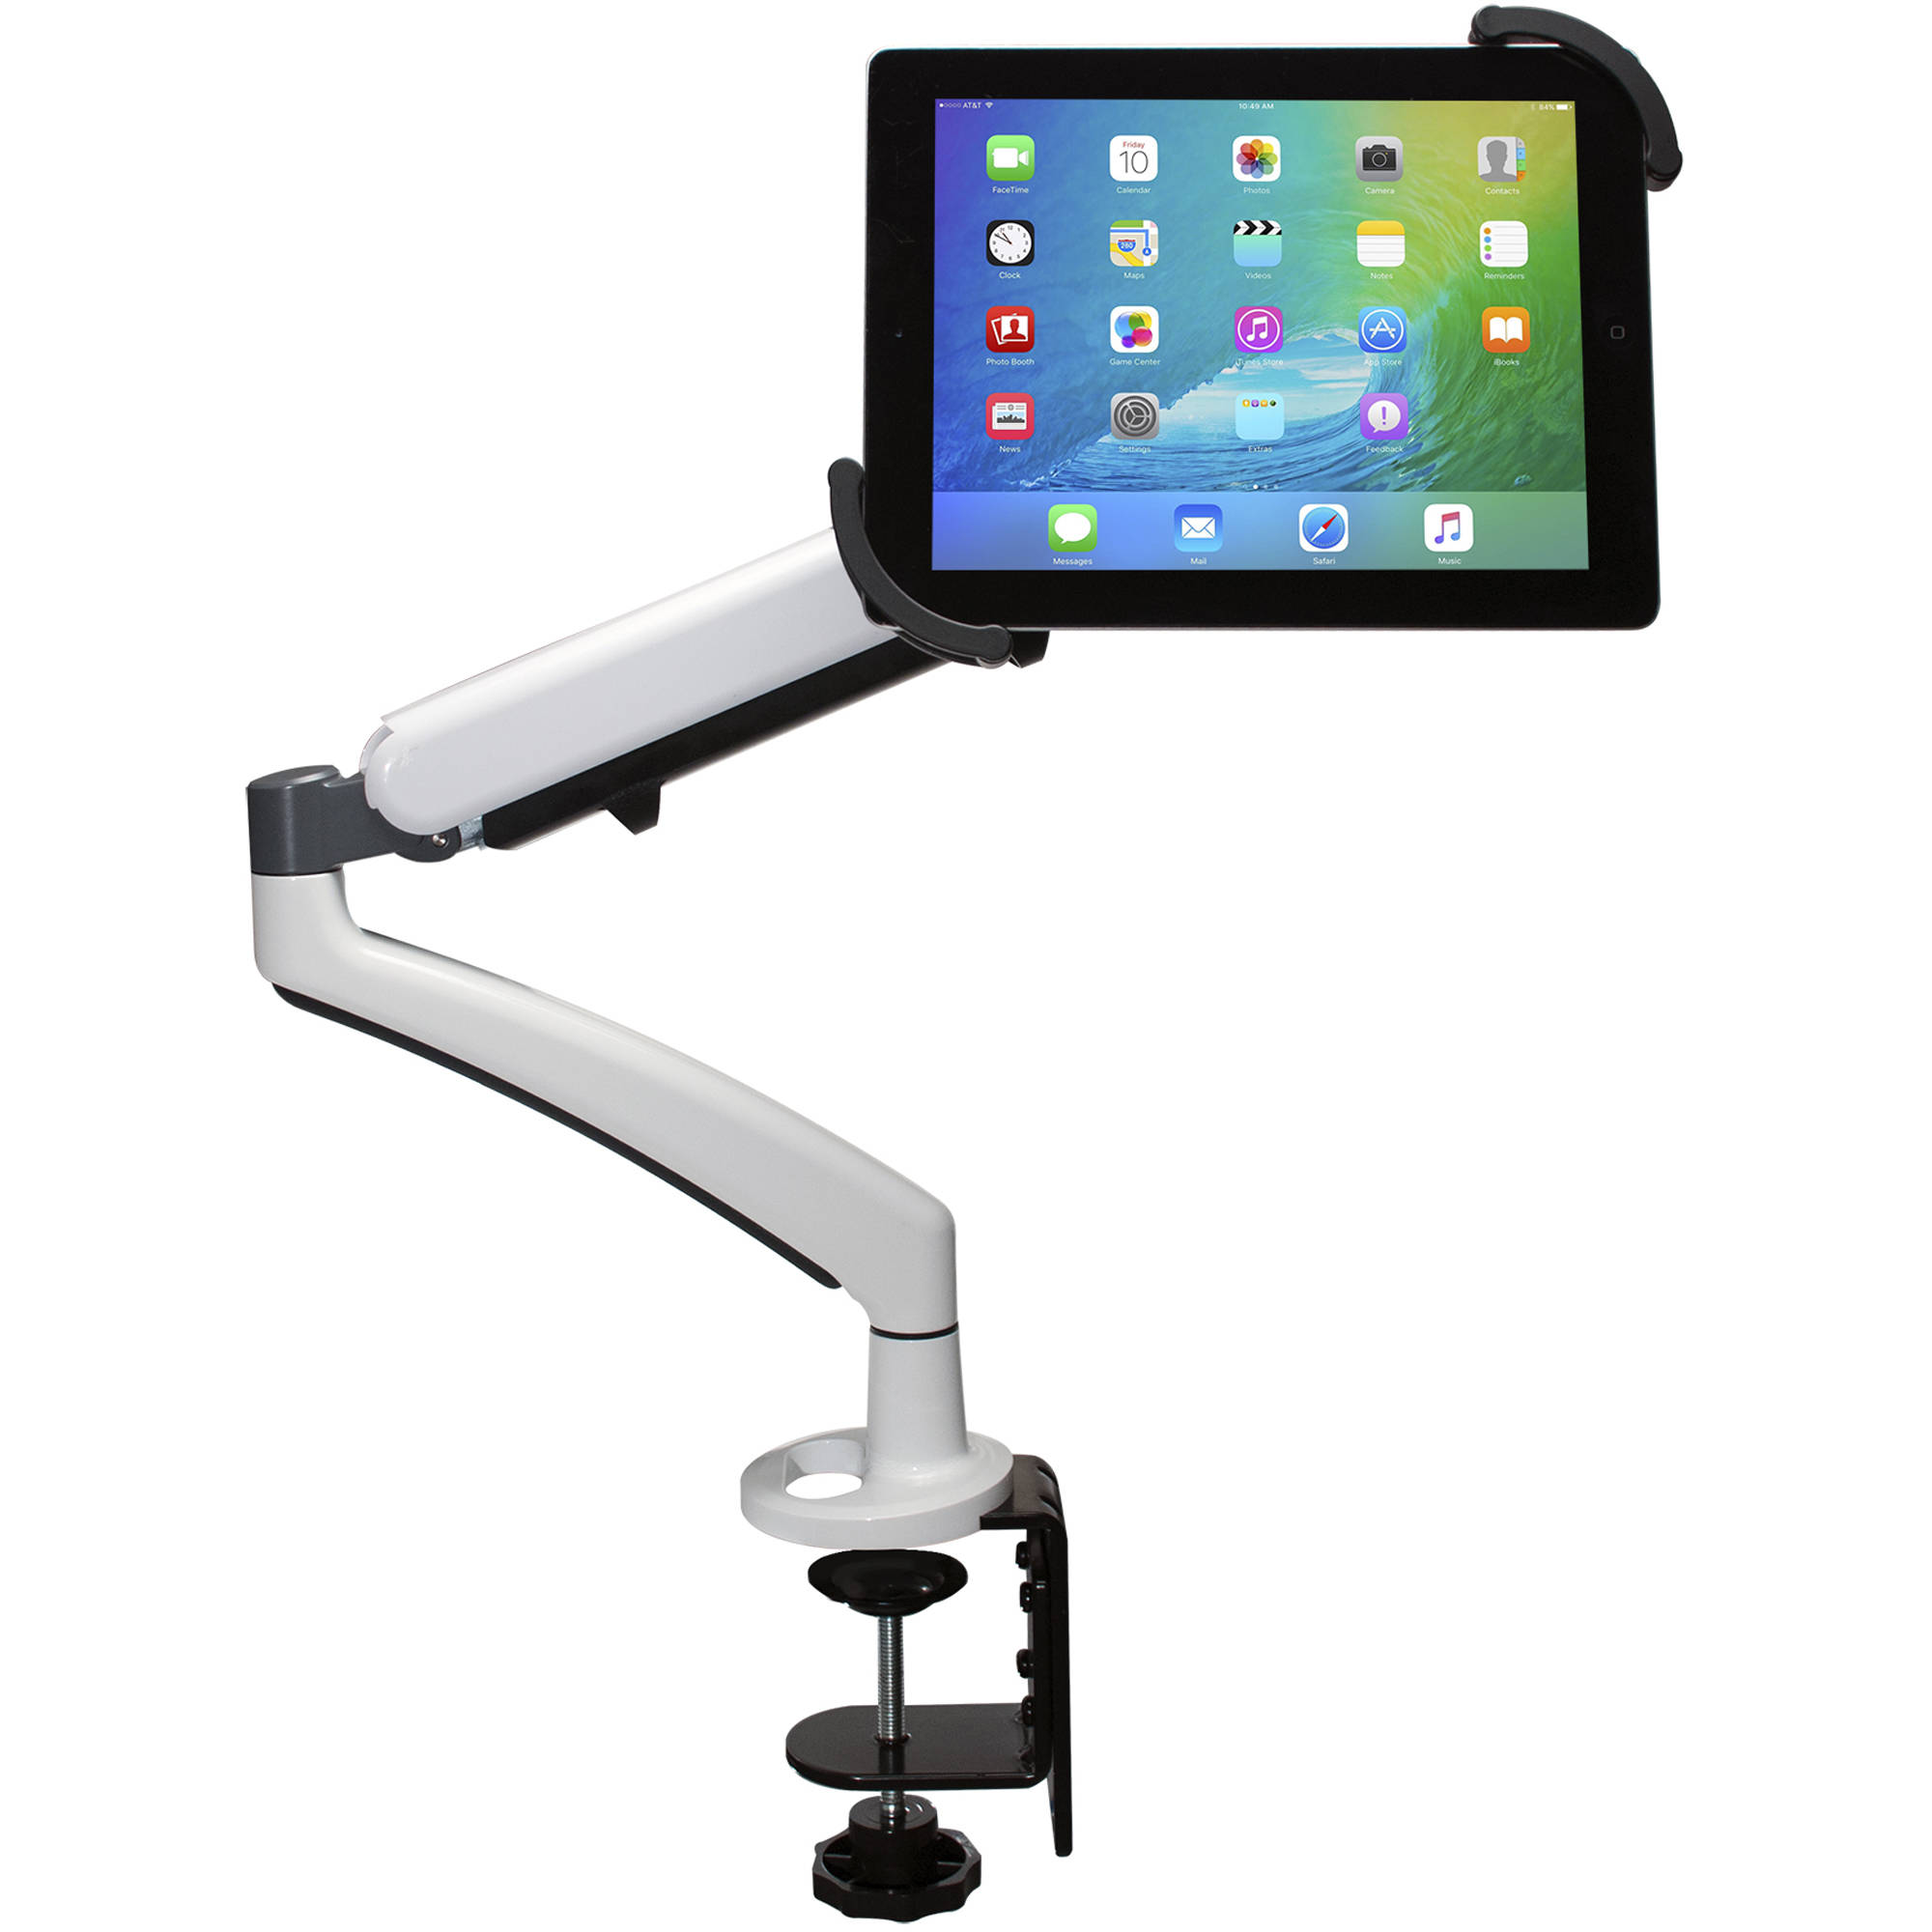 tablet or ipad not included - Tablet Mount